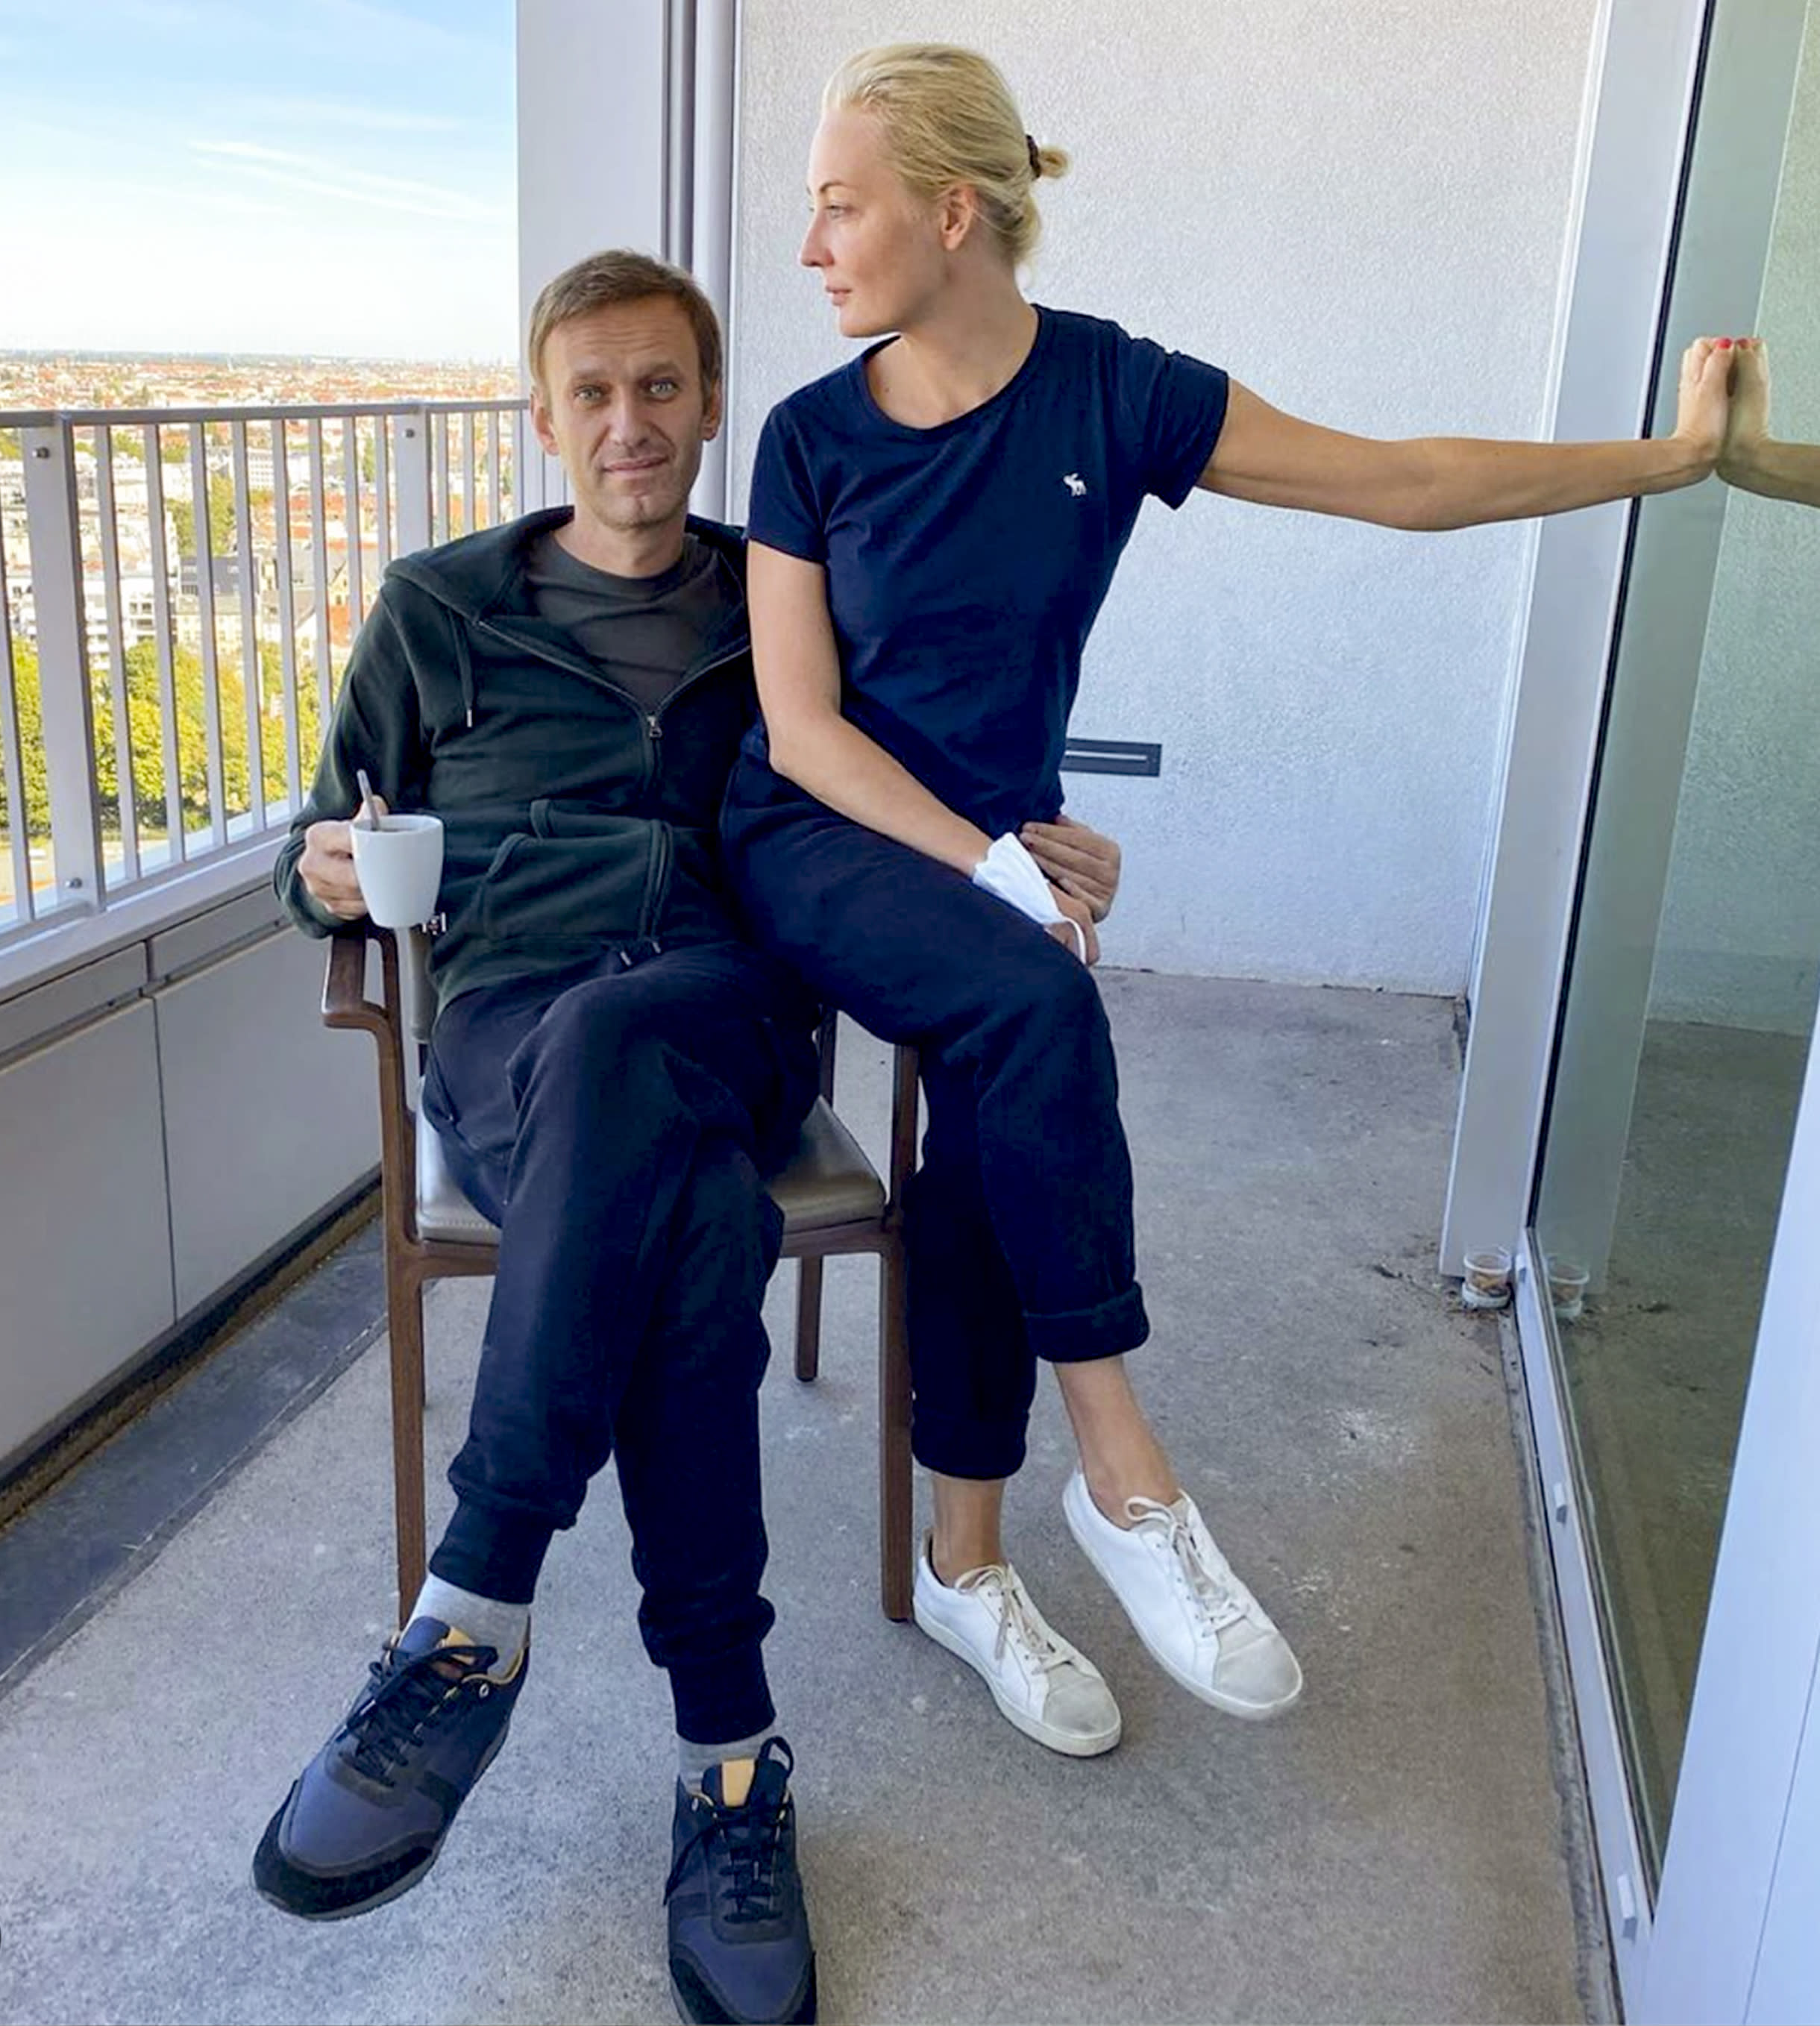 """In this photo published by Russian opposition leader Alexei Navalny on his Instagram account on Monday, Sept. 21, 2020, Russian opposition leader Alexei Navalny and his wife Yulia pose for a photo in a hospital in Berlin. Navalny on Monday demanded that Russia returned clothes he was wearing on the day he fell into a coma, calling it a """"crucial piece of evidence"""" of a suspected nerve agent poisoning he is being treated for at the German hospital. (Navalny Instagram via AP)"""